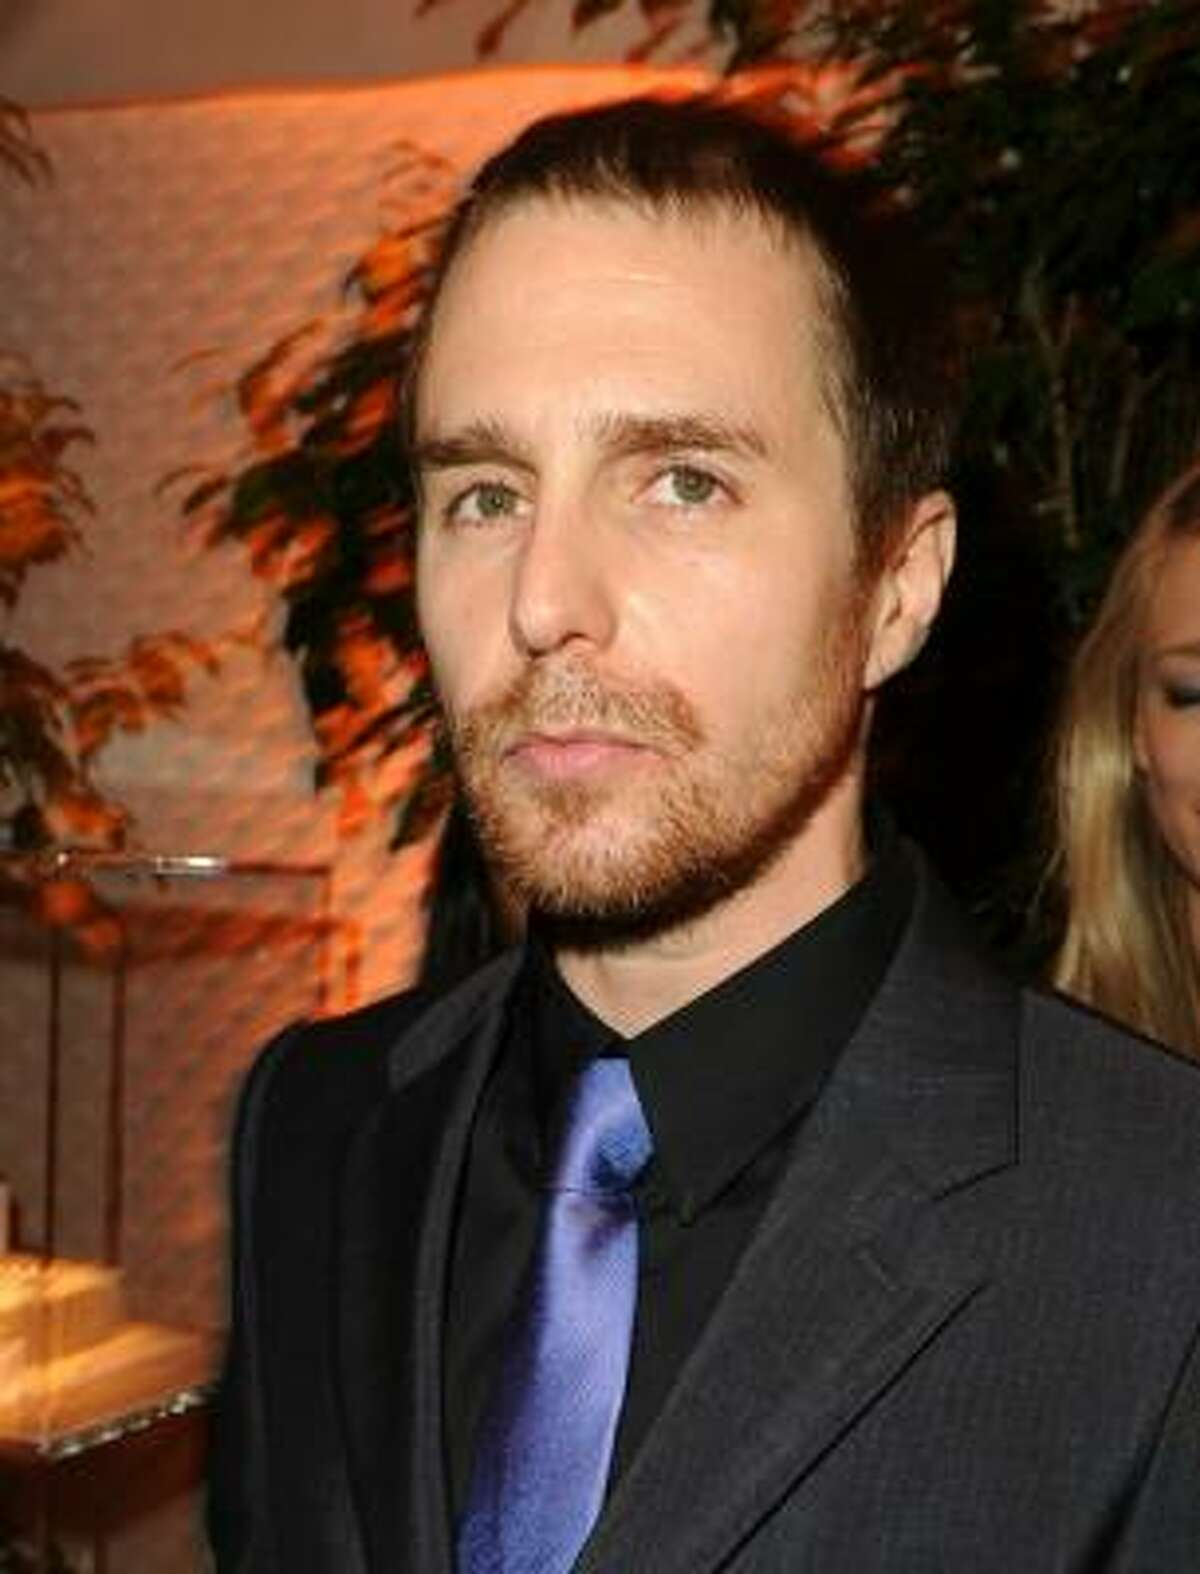 Up next for actor Sam Rockwell is a film called Cowboys & Aliens.